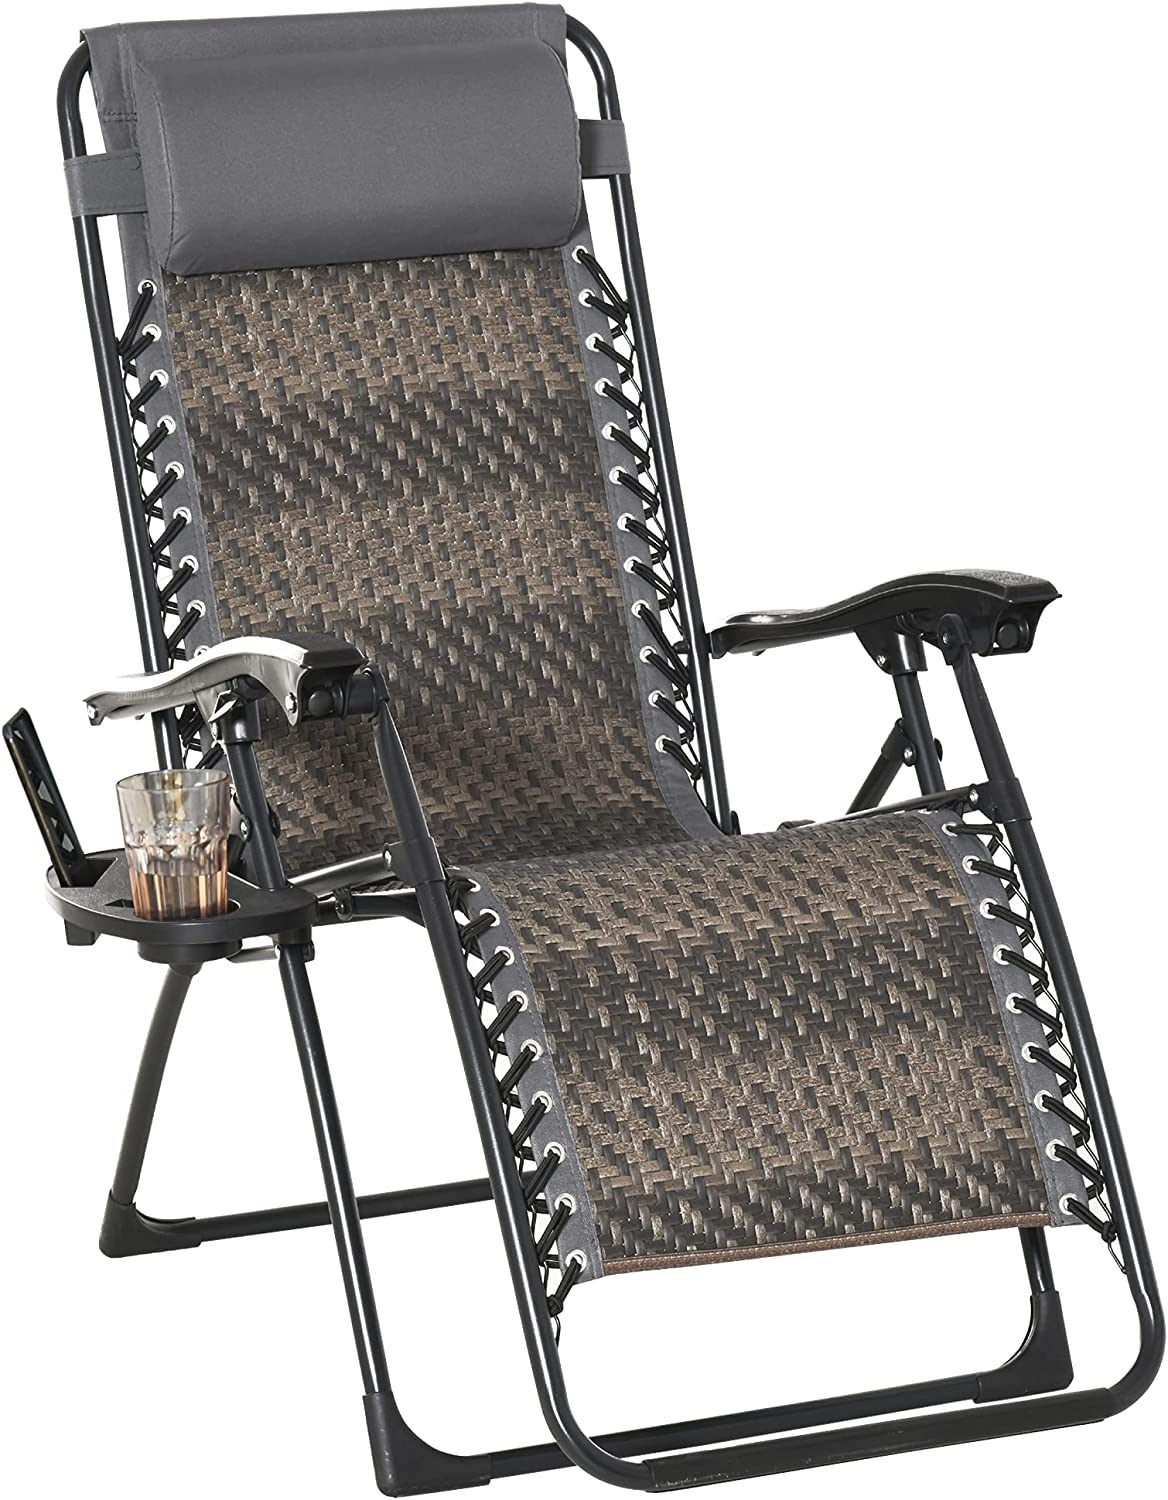 Outsunny Zero Gravity Lounge Ranking TOP13 Chair excellence Rattan Adjustable Loun Wicker